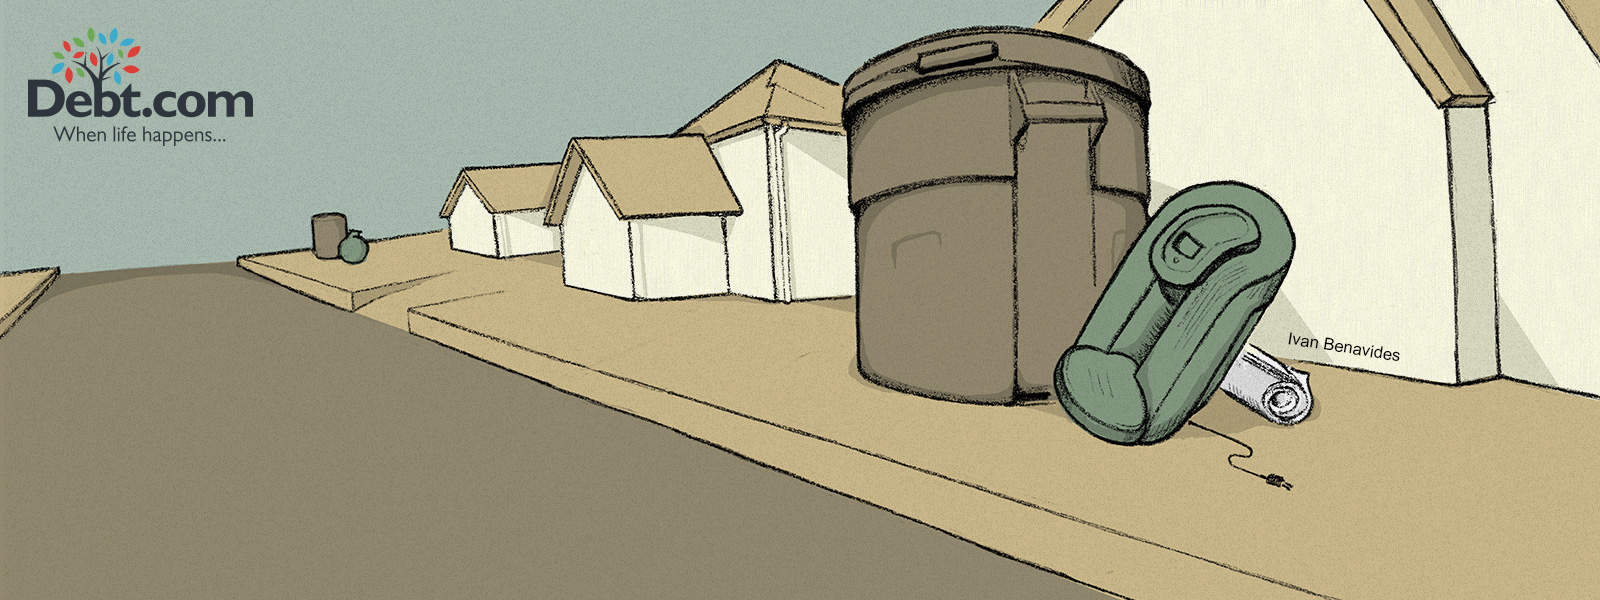 A Keurig coffee maker is thrown out with the trash (illustrated)